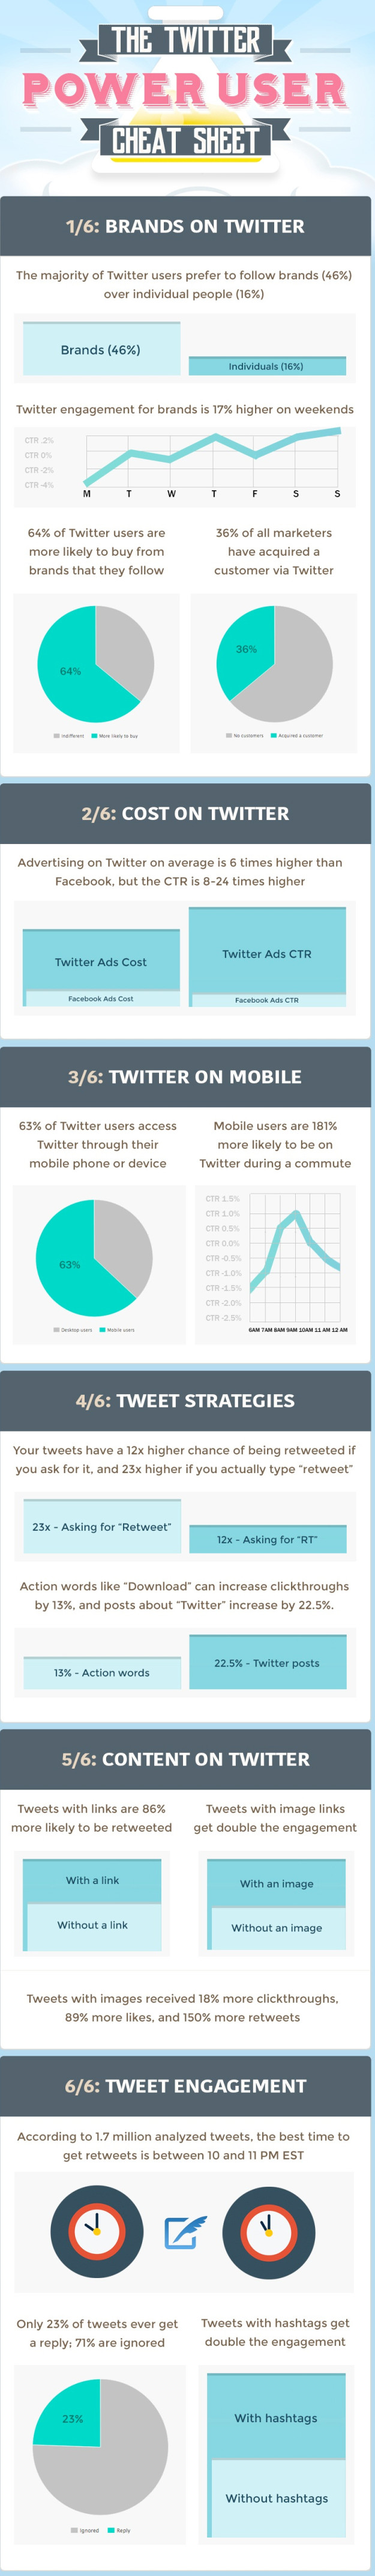 the-twitter-power-user-cheat-sheet-20-stats-to-improve-your-presence1